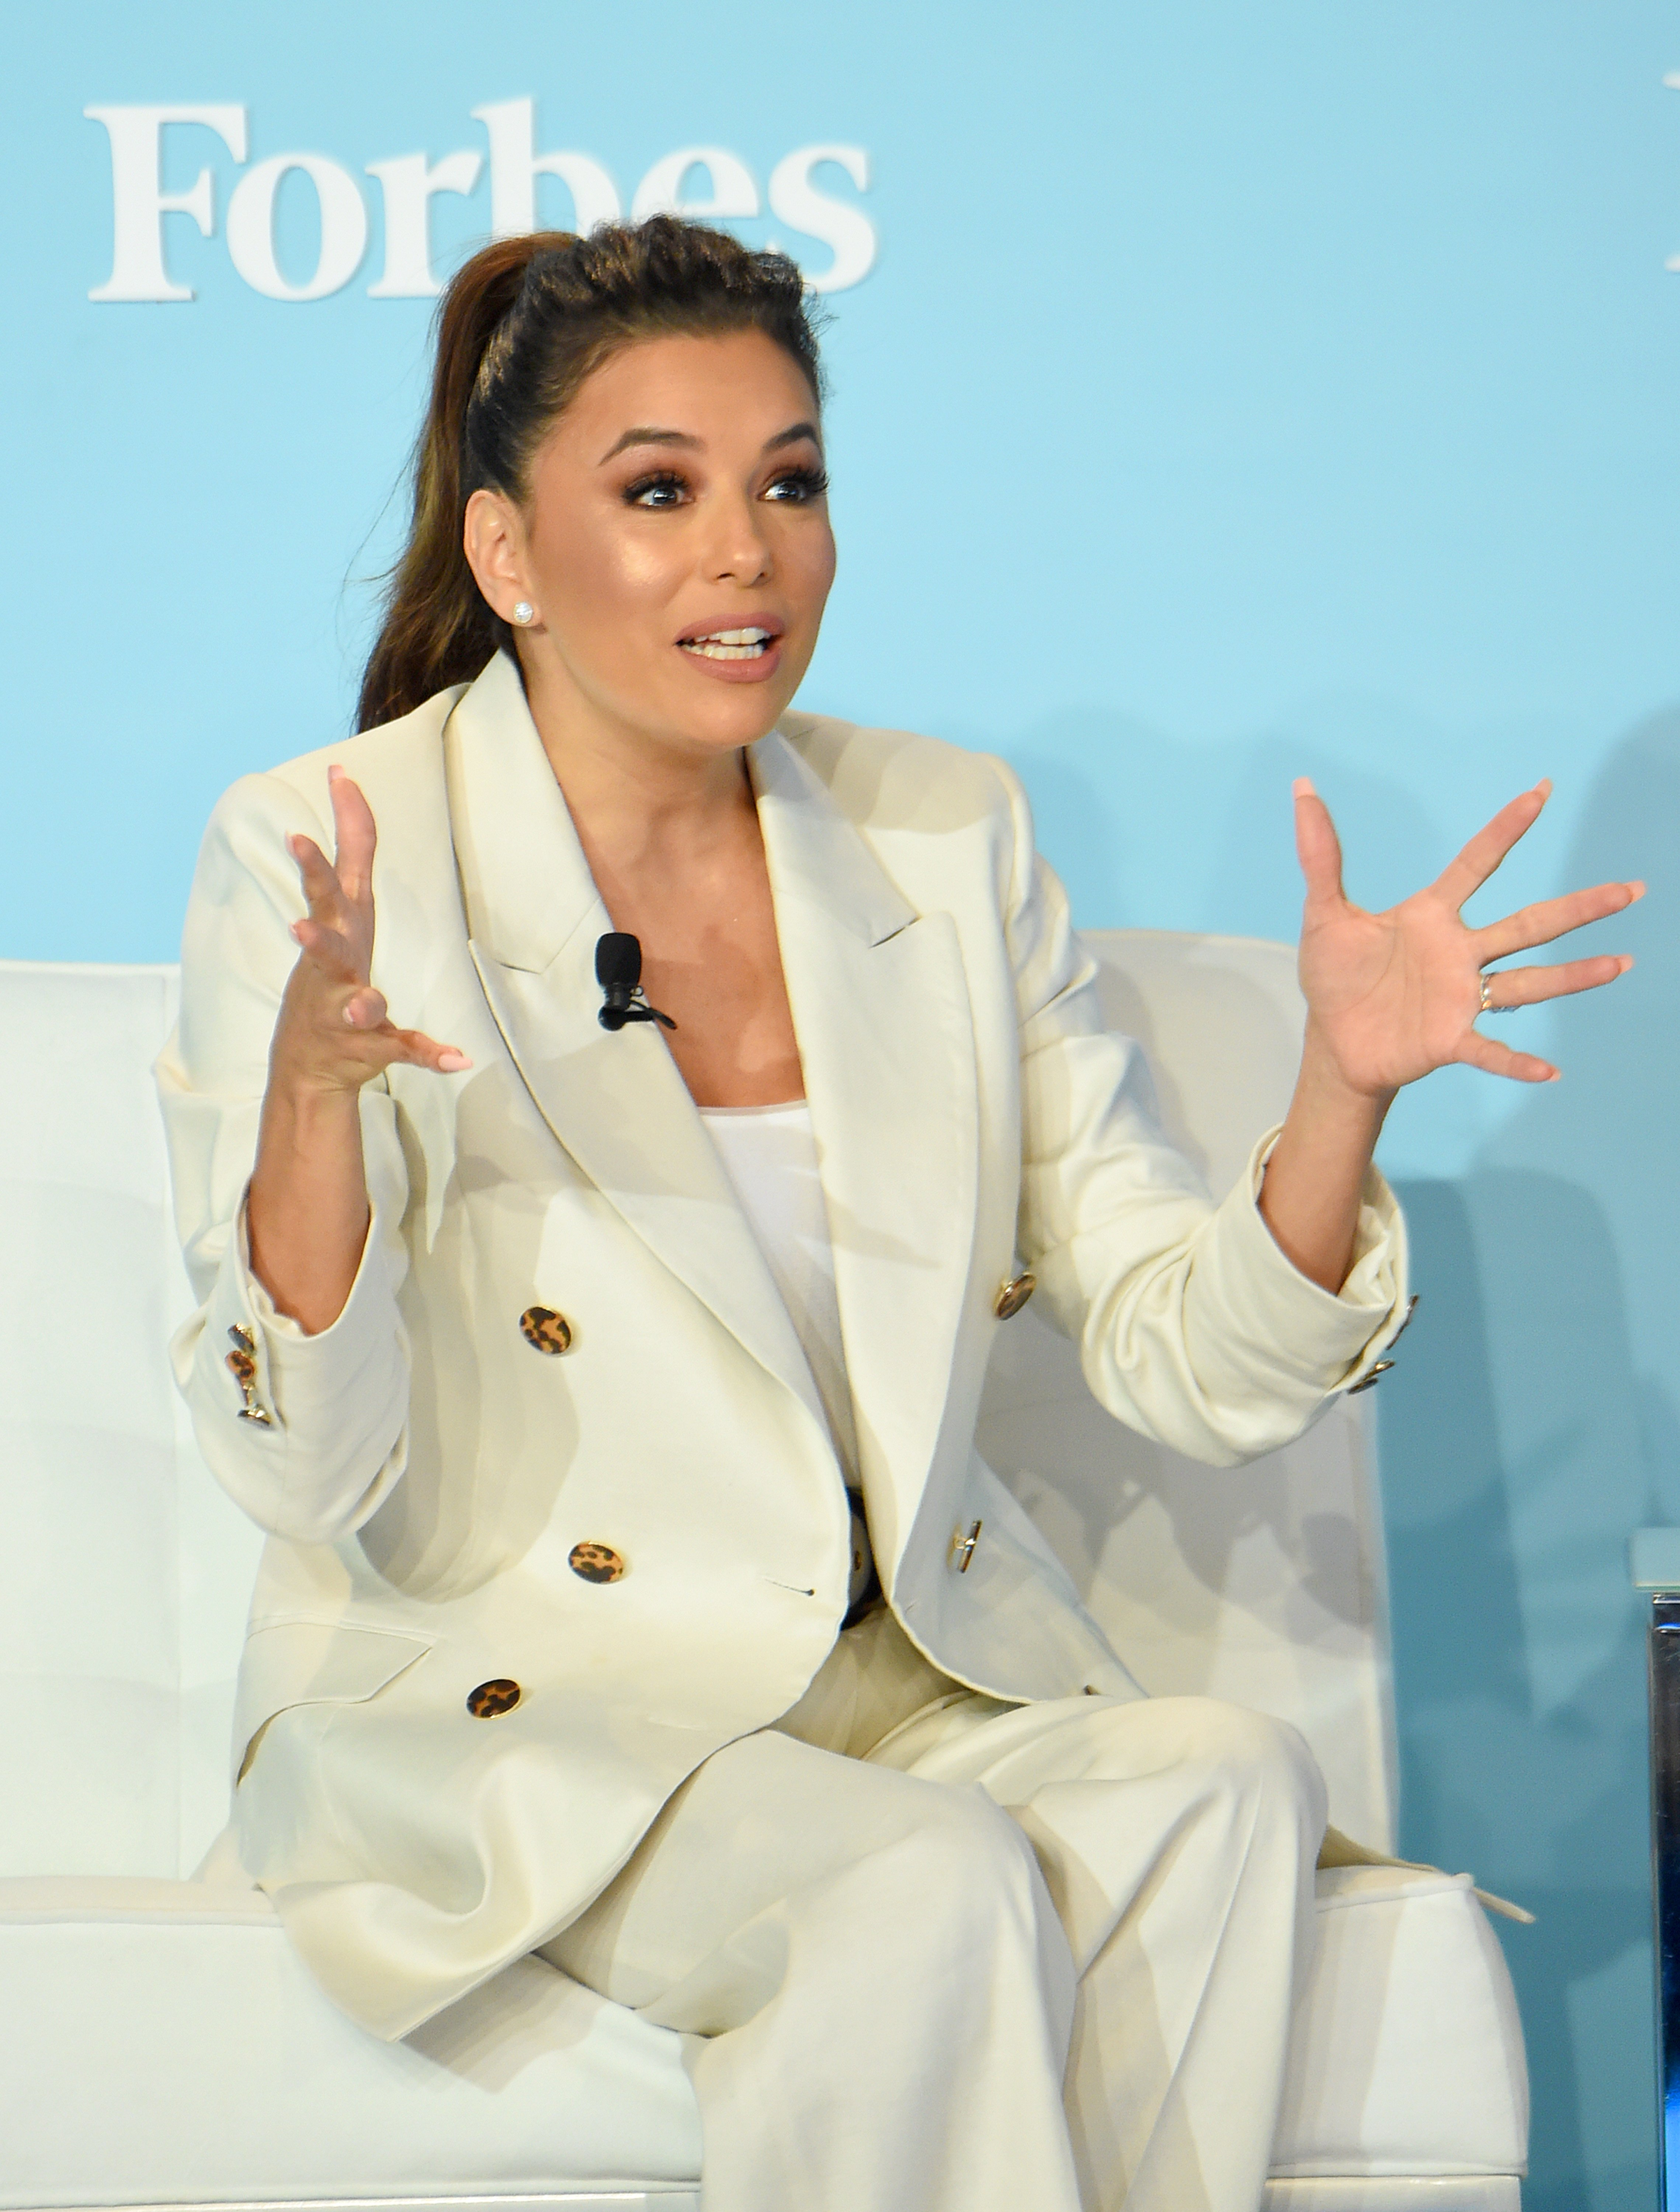 Eva Longoria speaks onstage at the 2019 Forbes Women's Summit at Pier 60 on June 18, 2019 in New York City. | Source: Getty Images